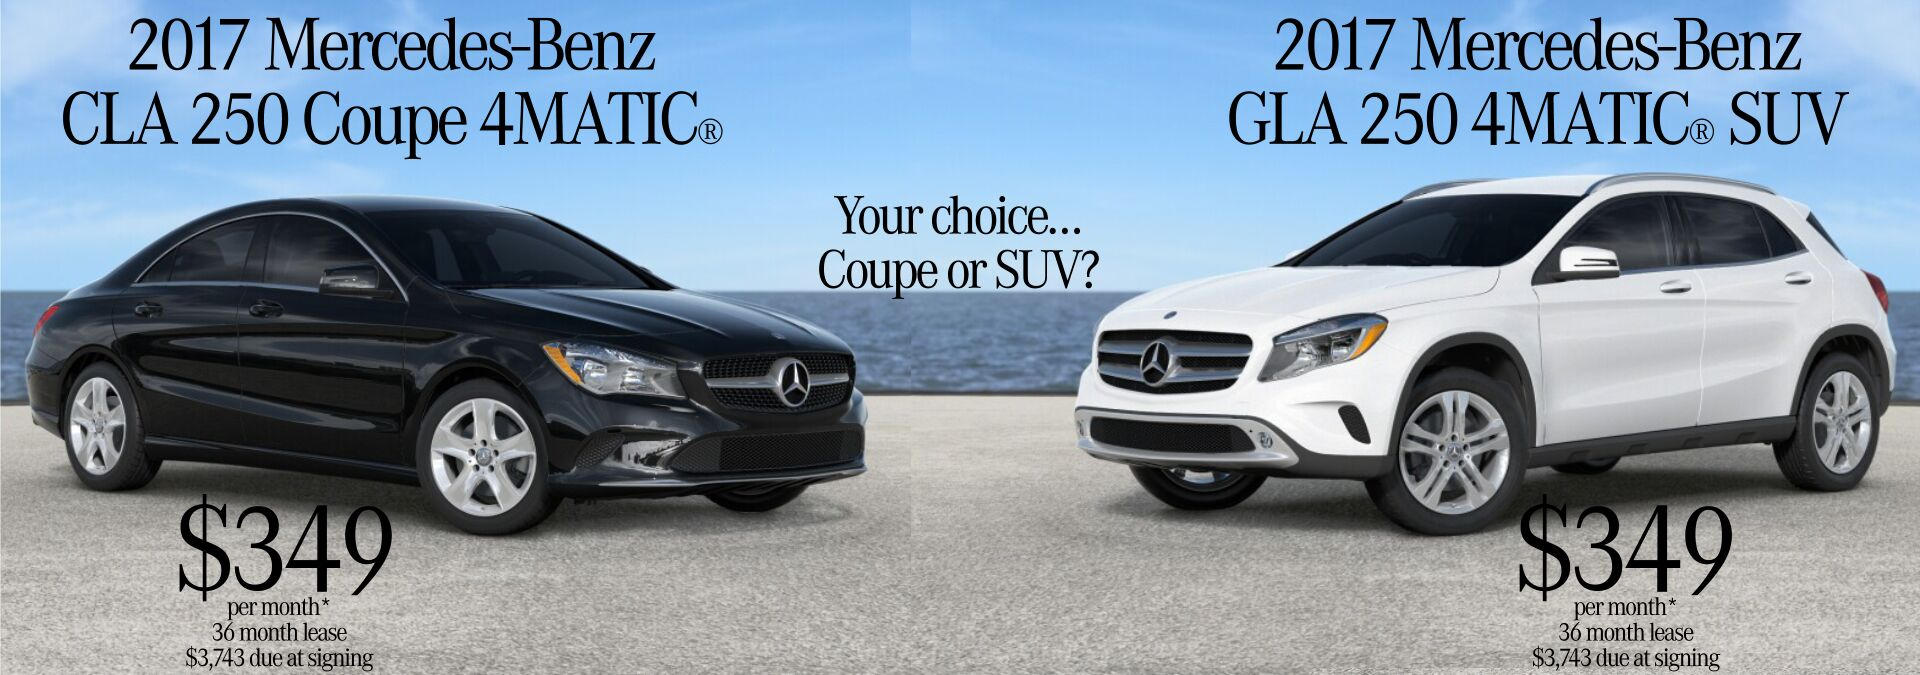 January 2017 CLA/GLA Lease Offers